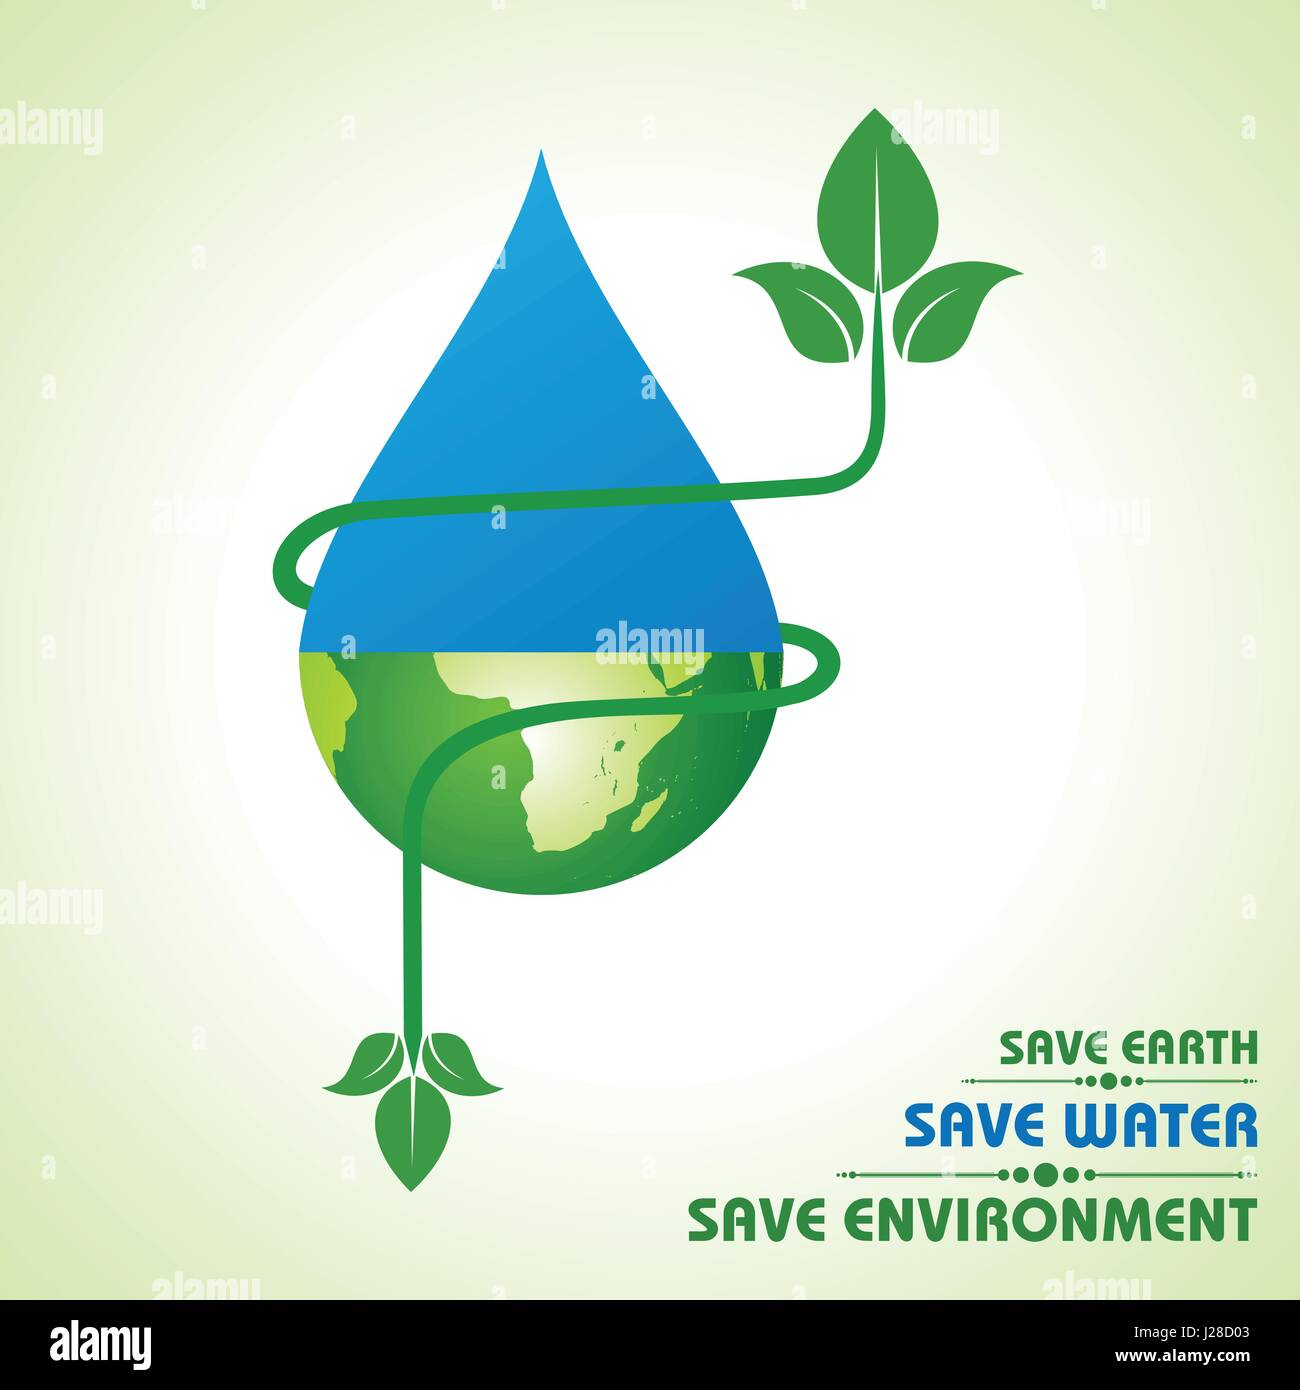 Save Earth Water And Environment Concept Stock Vector Stock Vector